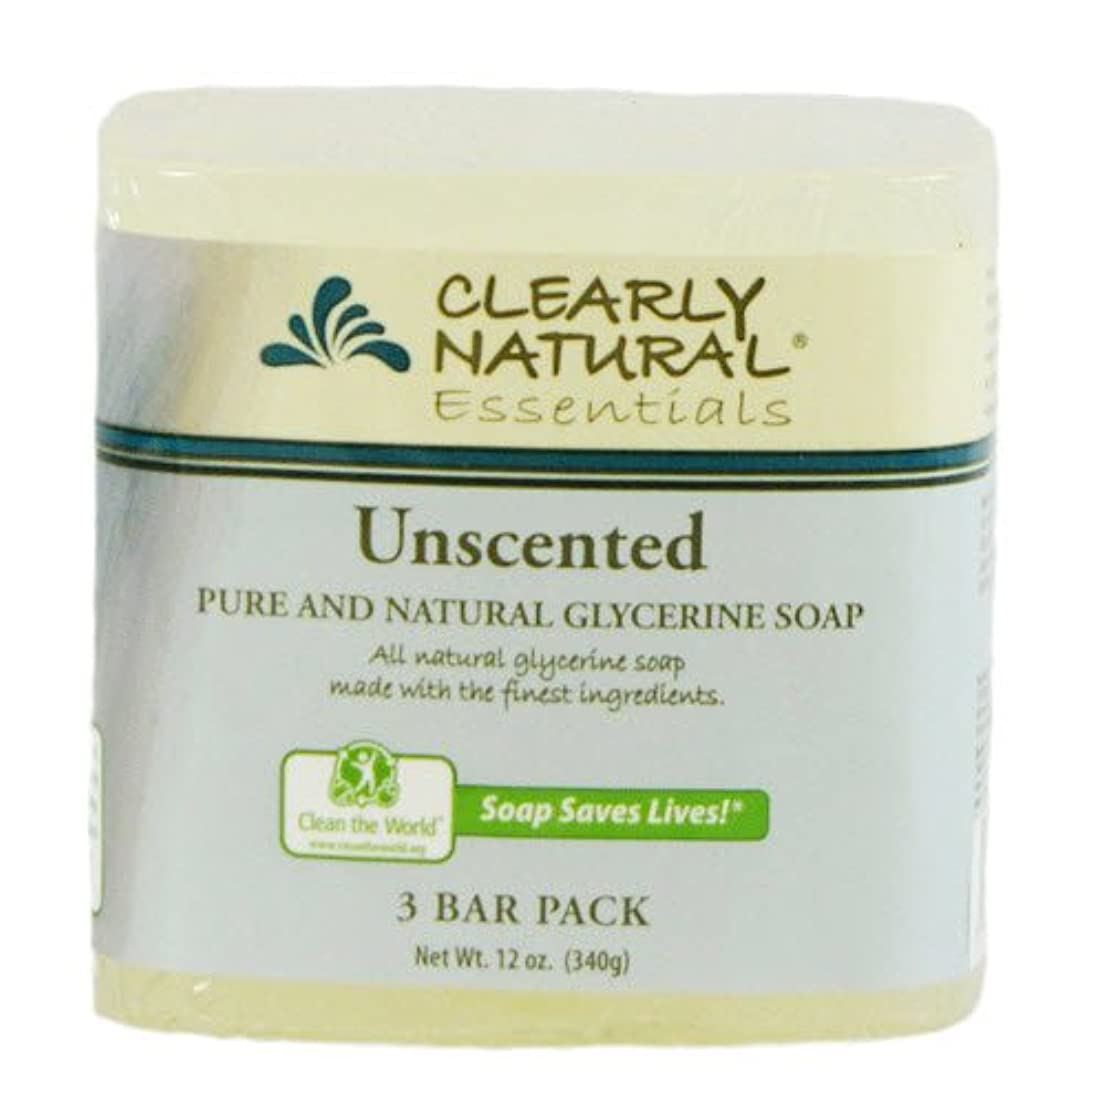 印をつけるコマース知らせるClearly Natural, Pure and Natural Glycerine Soap, Unscented, 3 Bar Pack, 4 oz Each